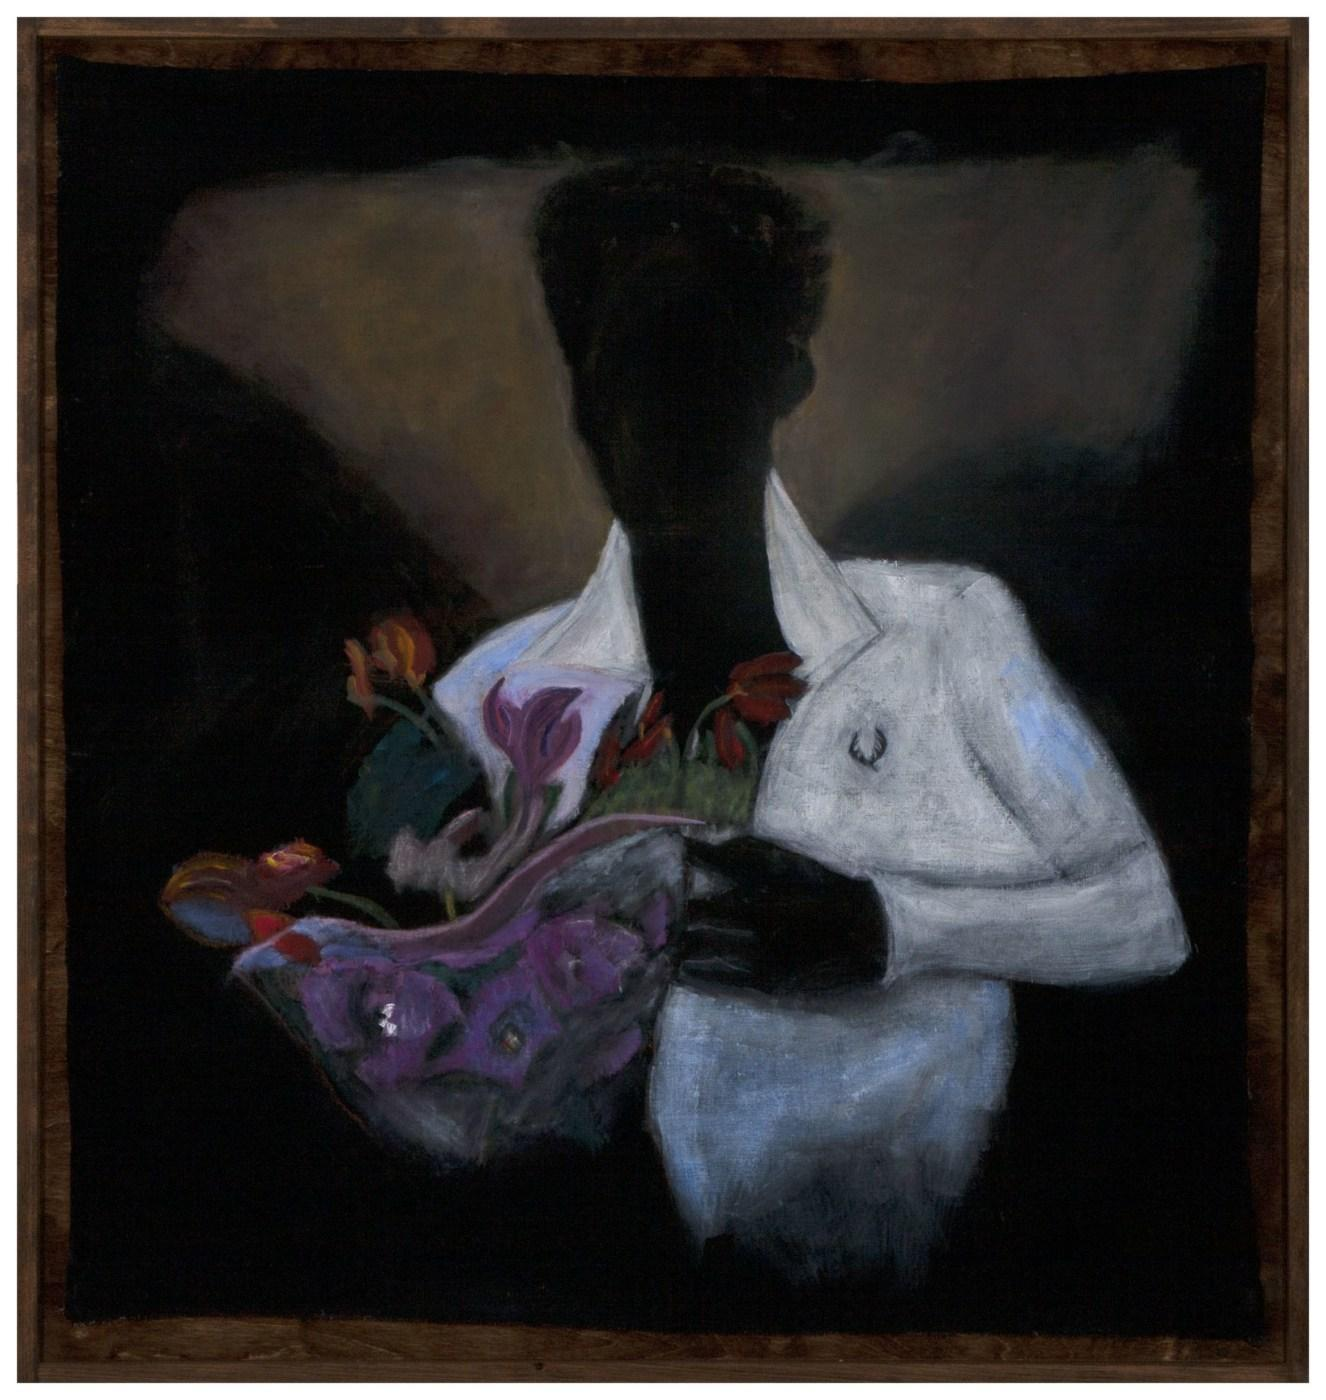 Reggie Burrows Hodges,/Last to Leave/, 2020, acrylic and pastel on linen,  114.3 × 114.3 cm